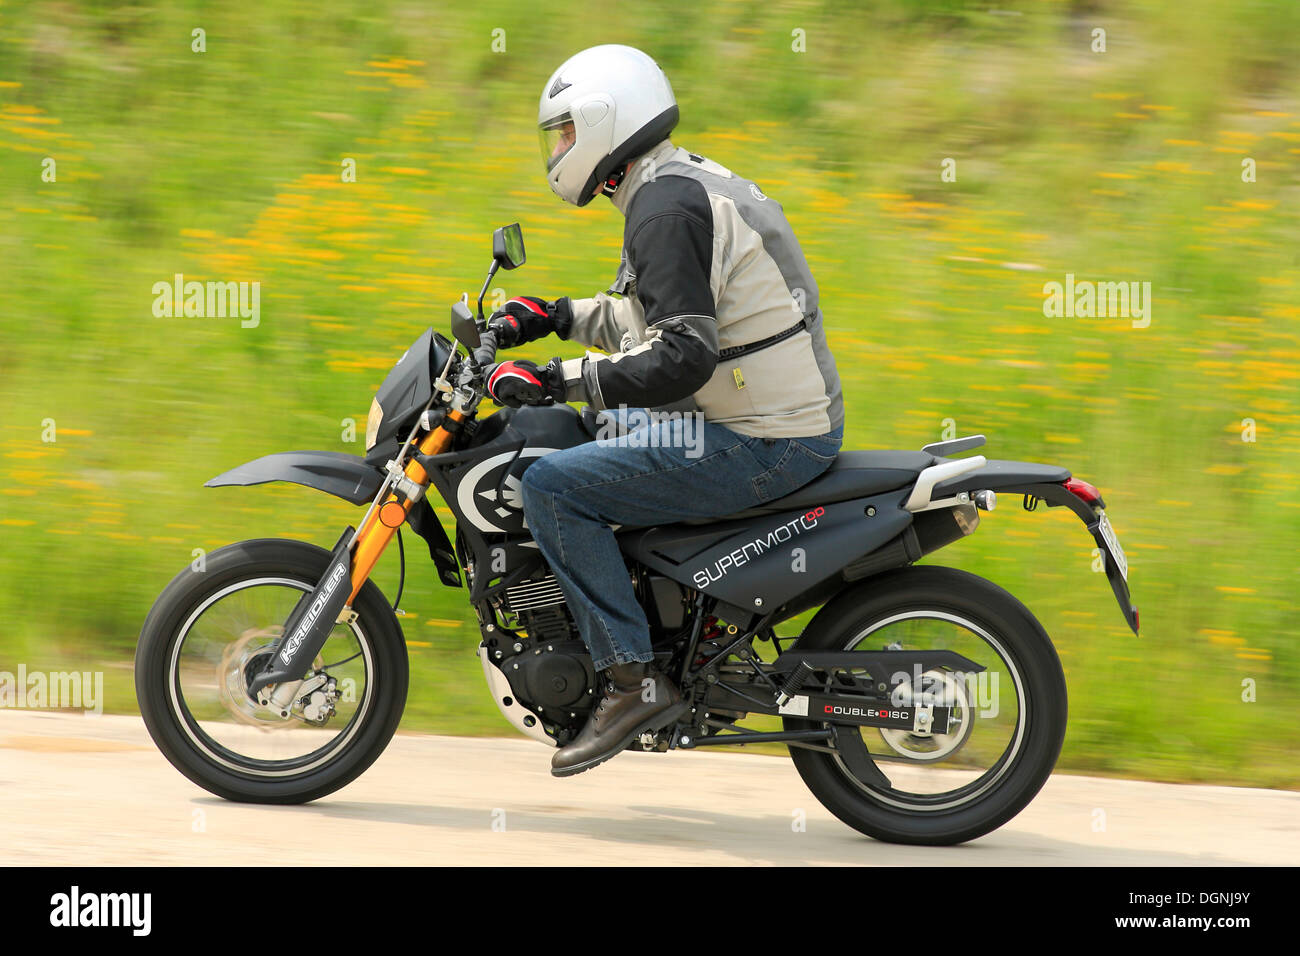 motorcyclist riding a kreidler supermoto 125 dd scooter. Black Bedroom Furniture Sets. Home Design Ideas